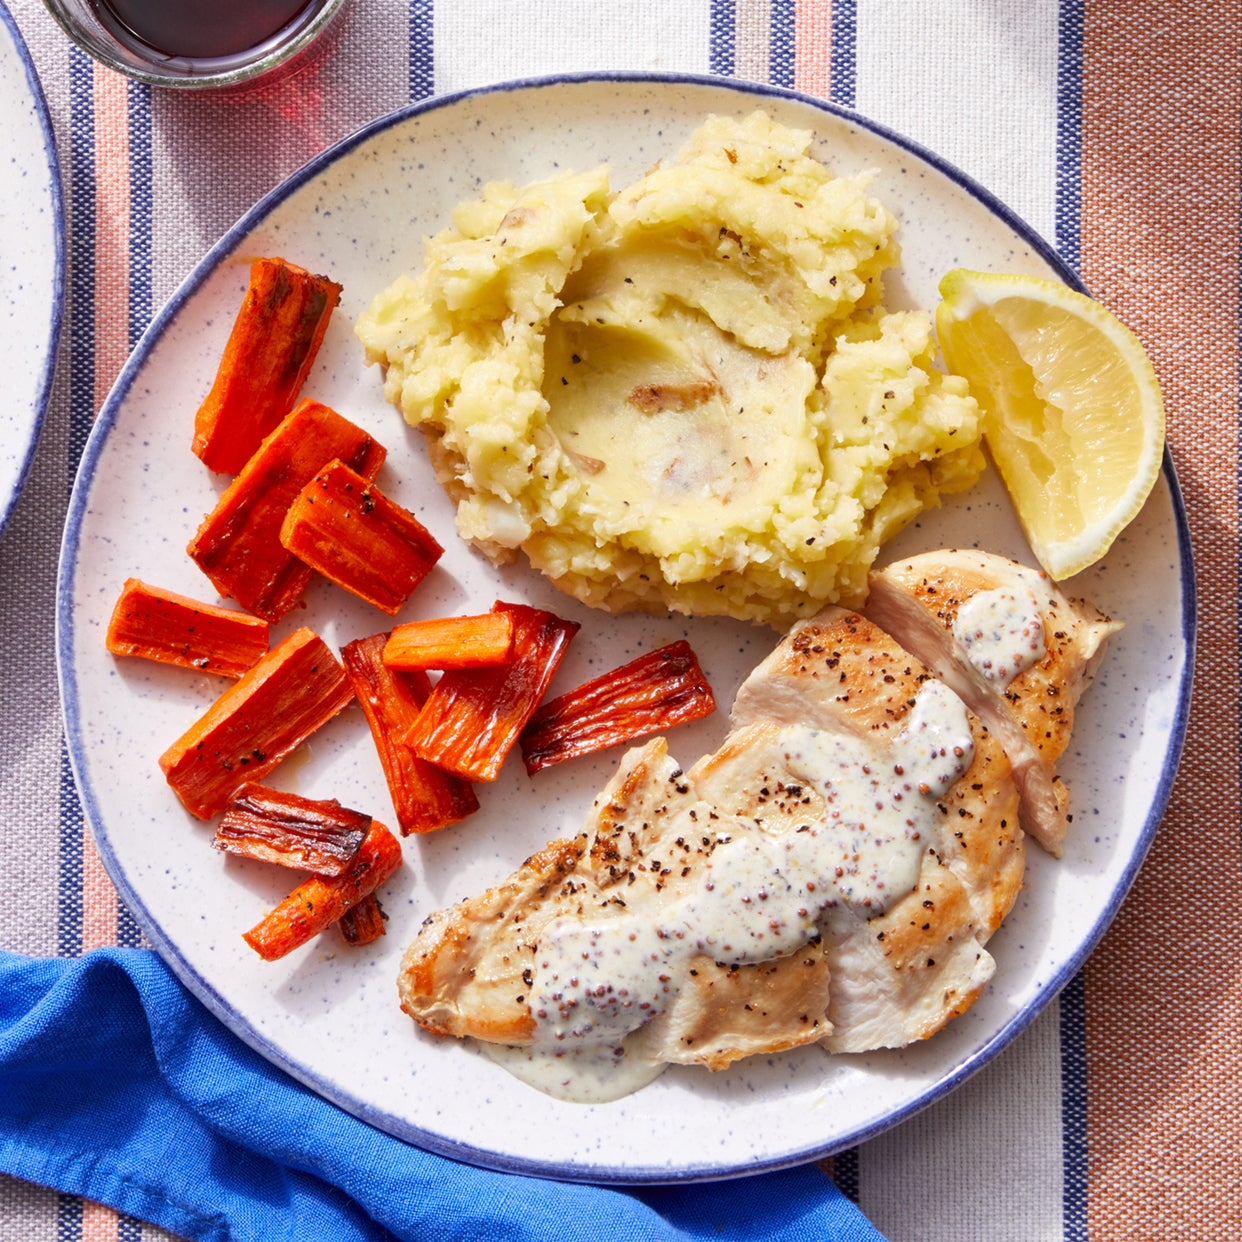 Lemon-Dijon Chicken with Mashed Potatoes & Roasted Carrots